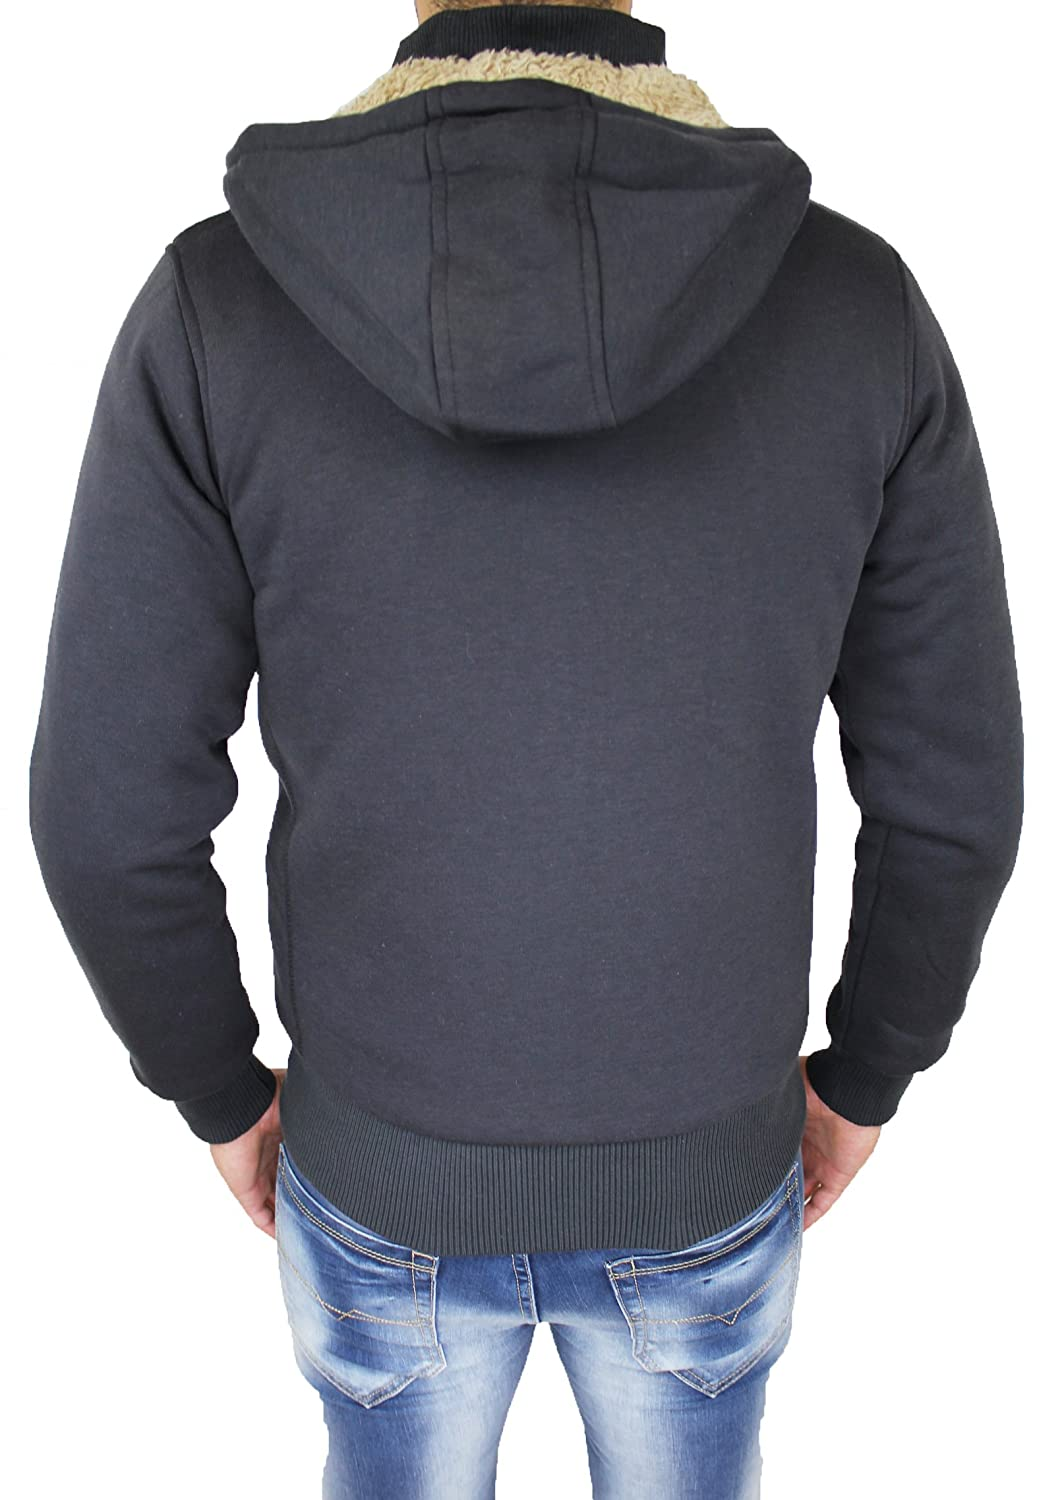 AK collezioni Men's Jumper black black Large